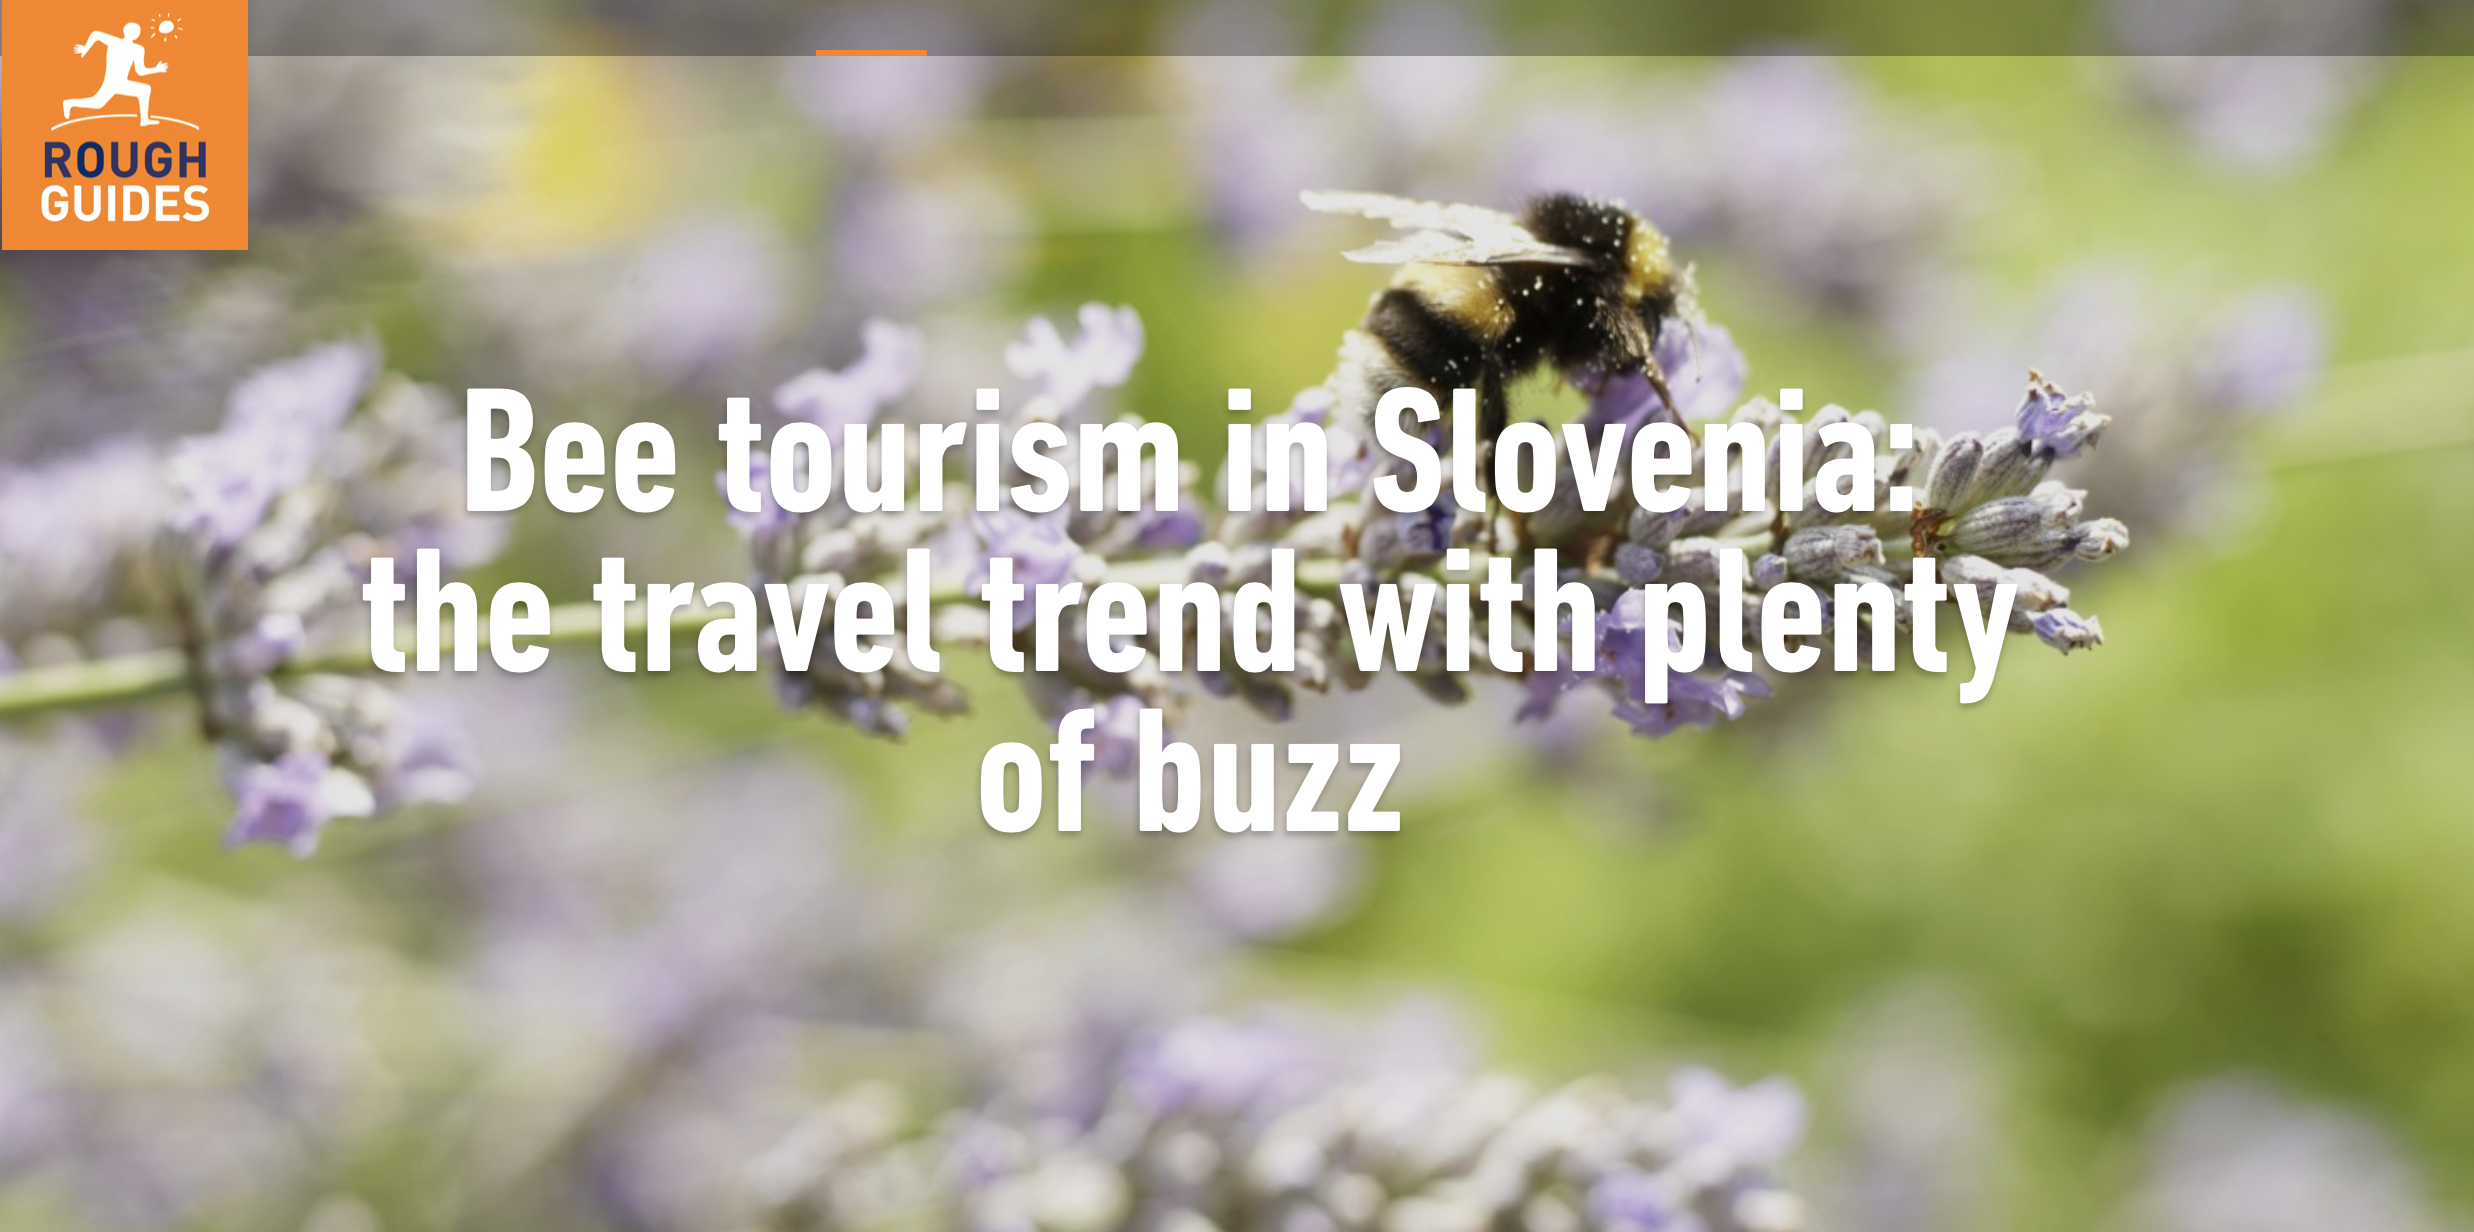 Bee Tourism Slovenia Rough Guides